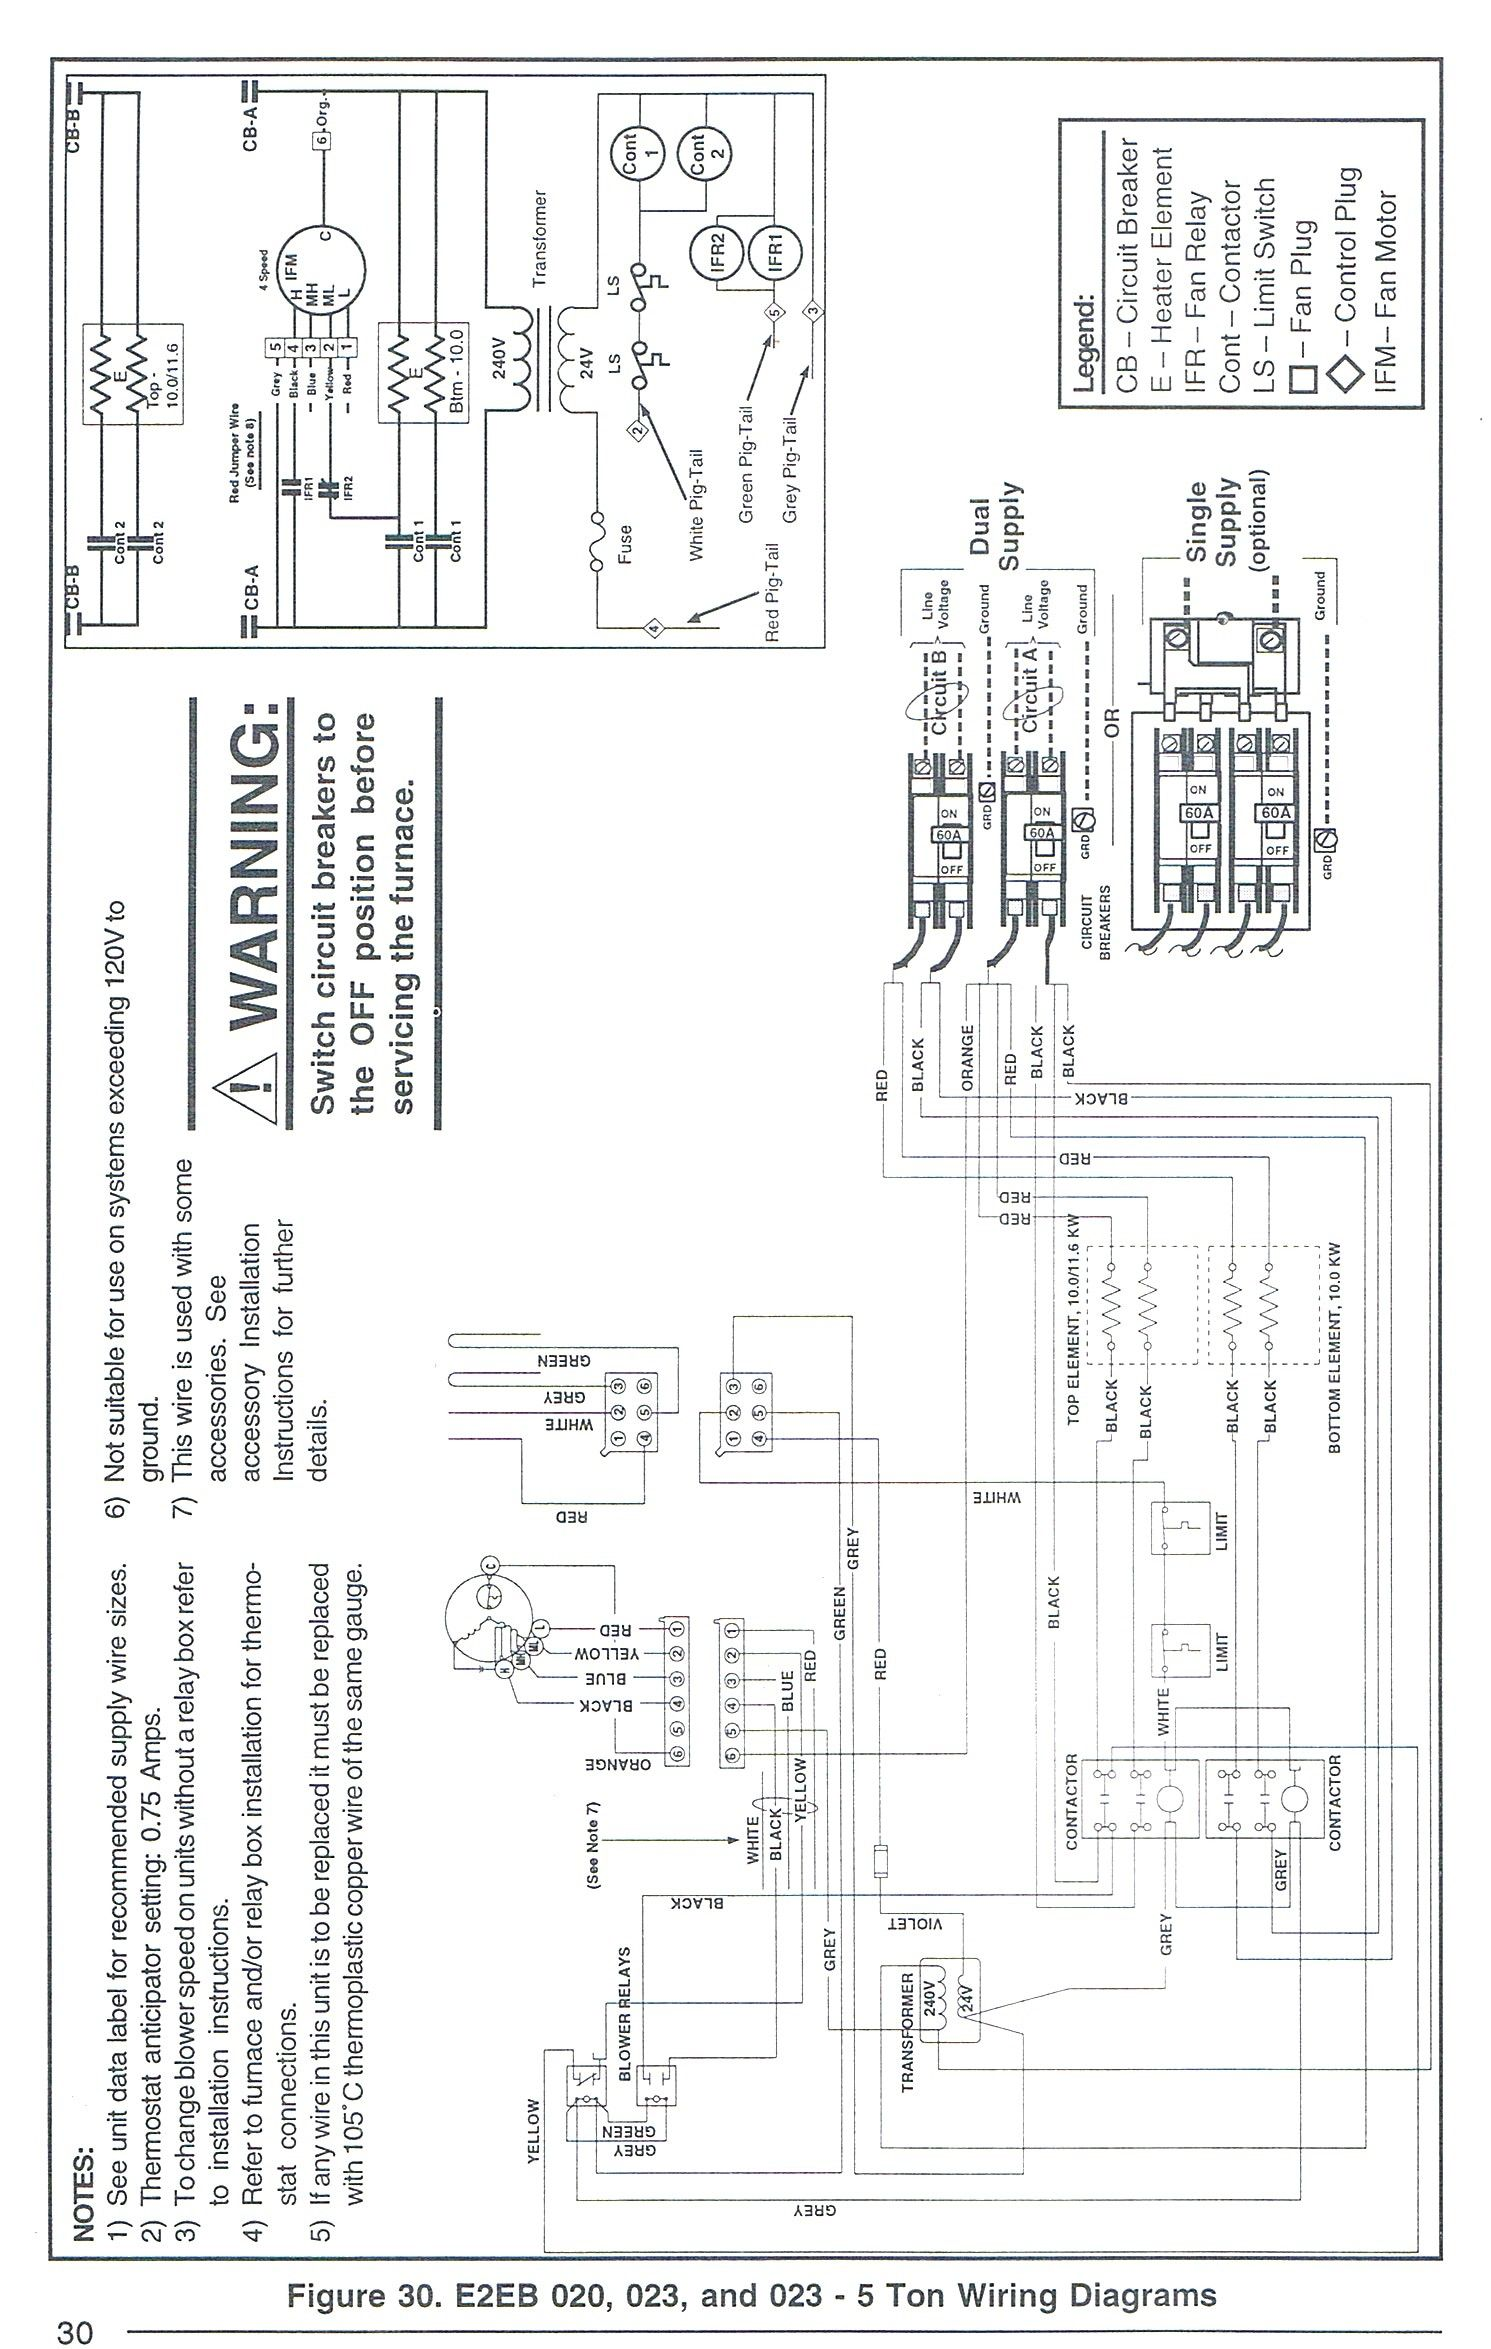 Unique Westinghouse Electric Furnace Wiring Diagram